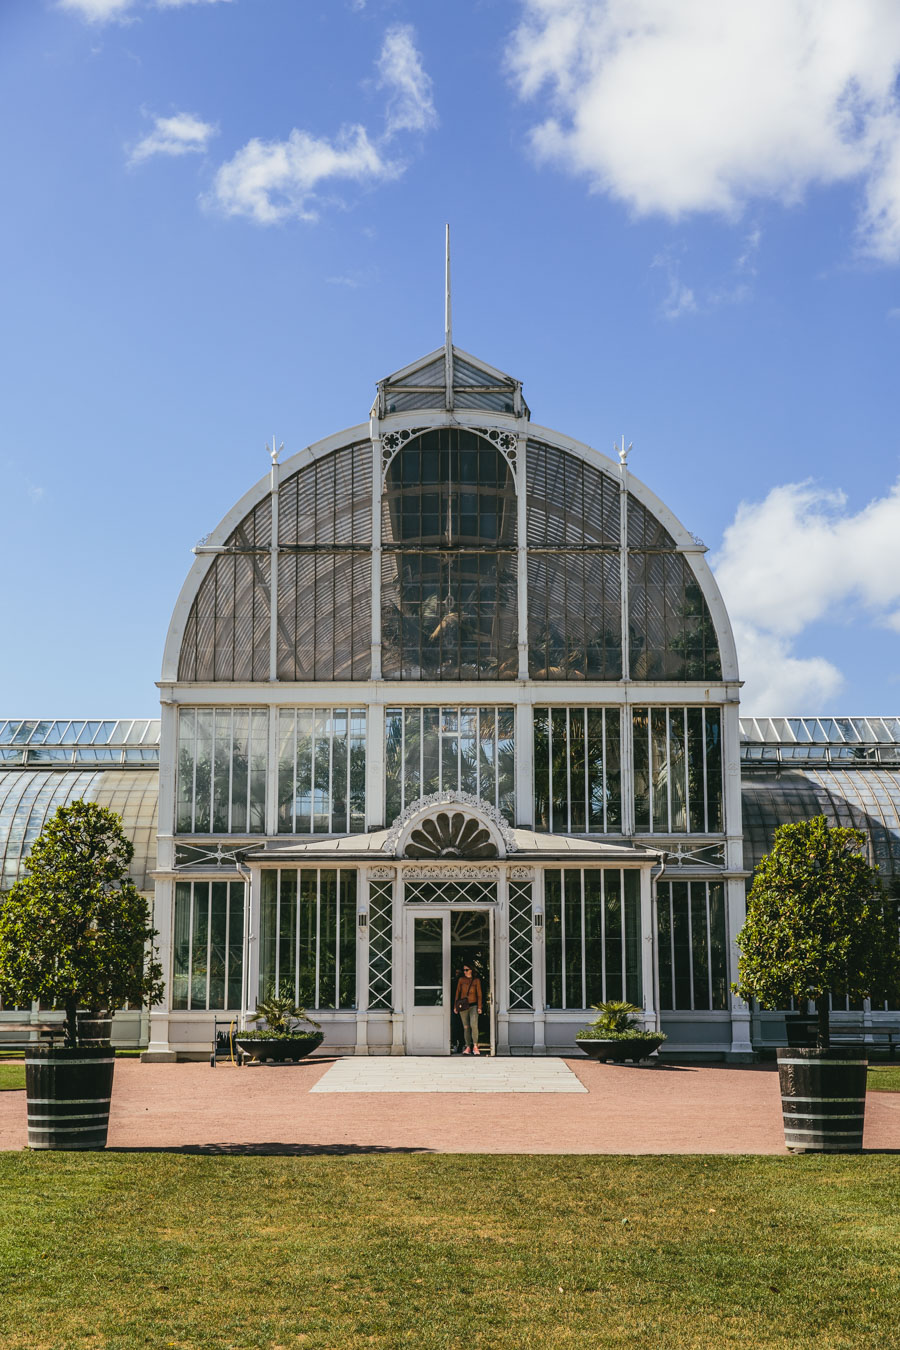 Palm house Gothenburg